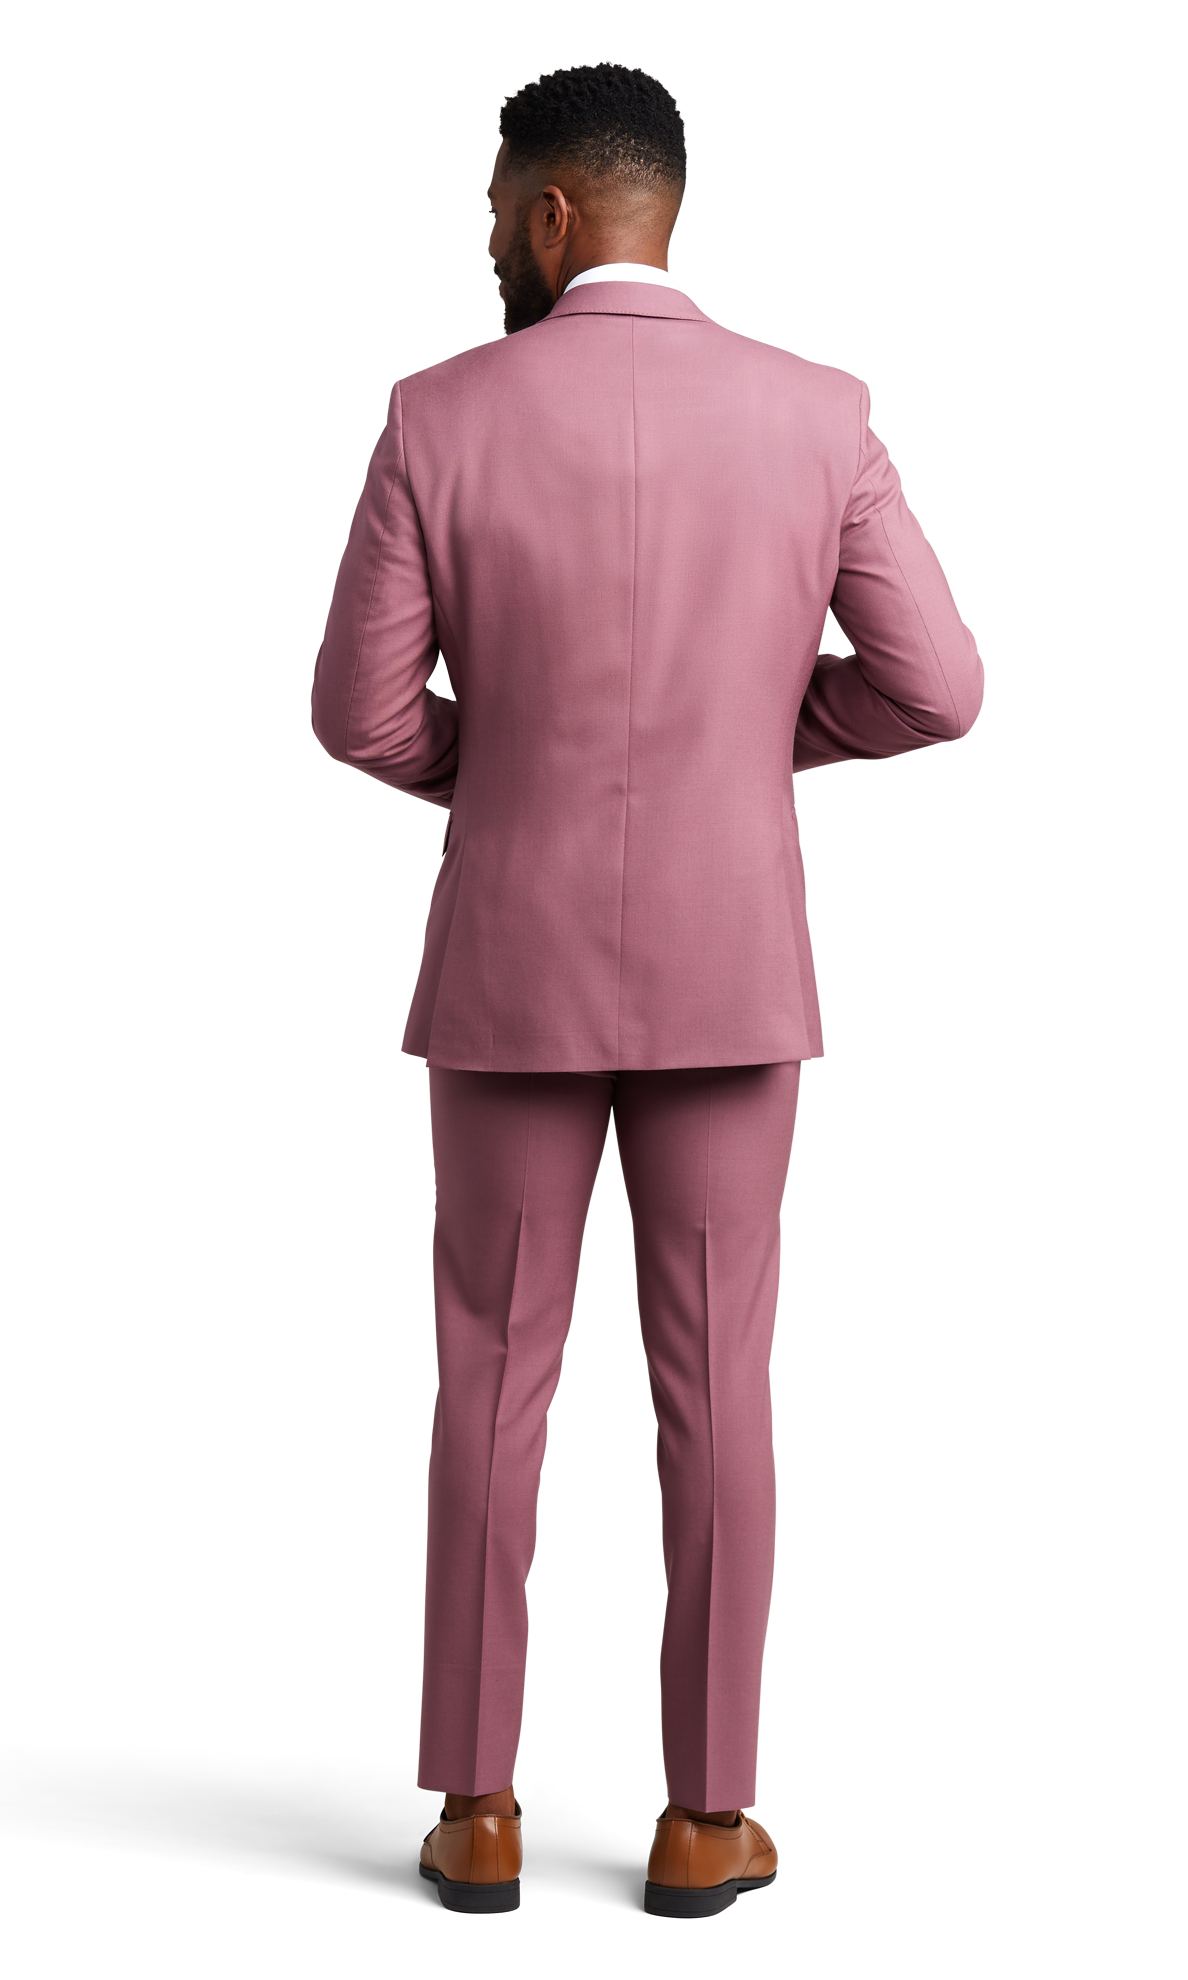 Rose Pink Suit Online Rental 3